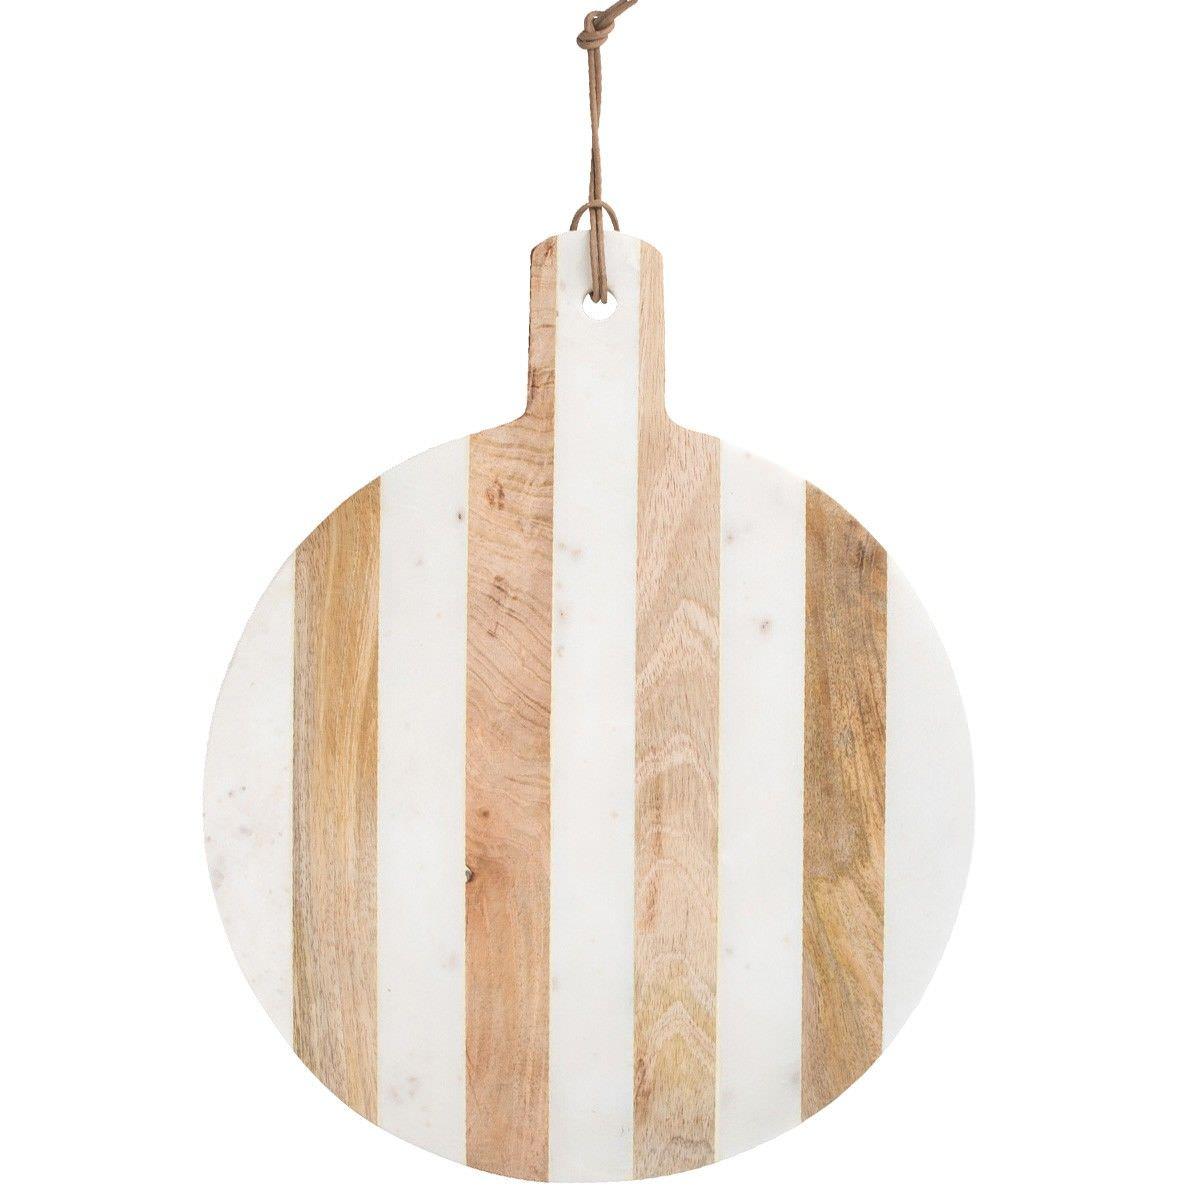 Moxon Marble & Timber Round Serving Board, Large